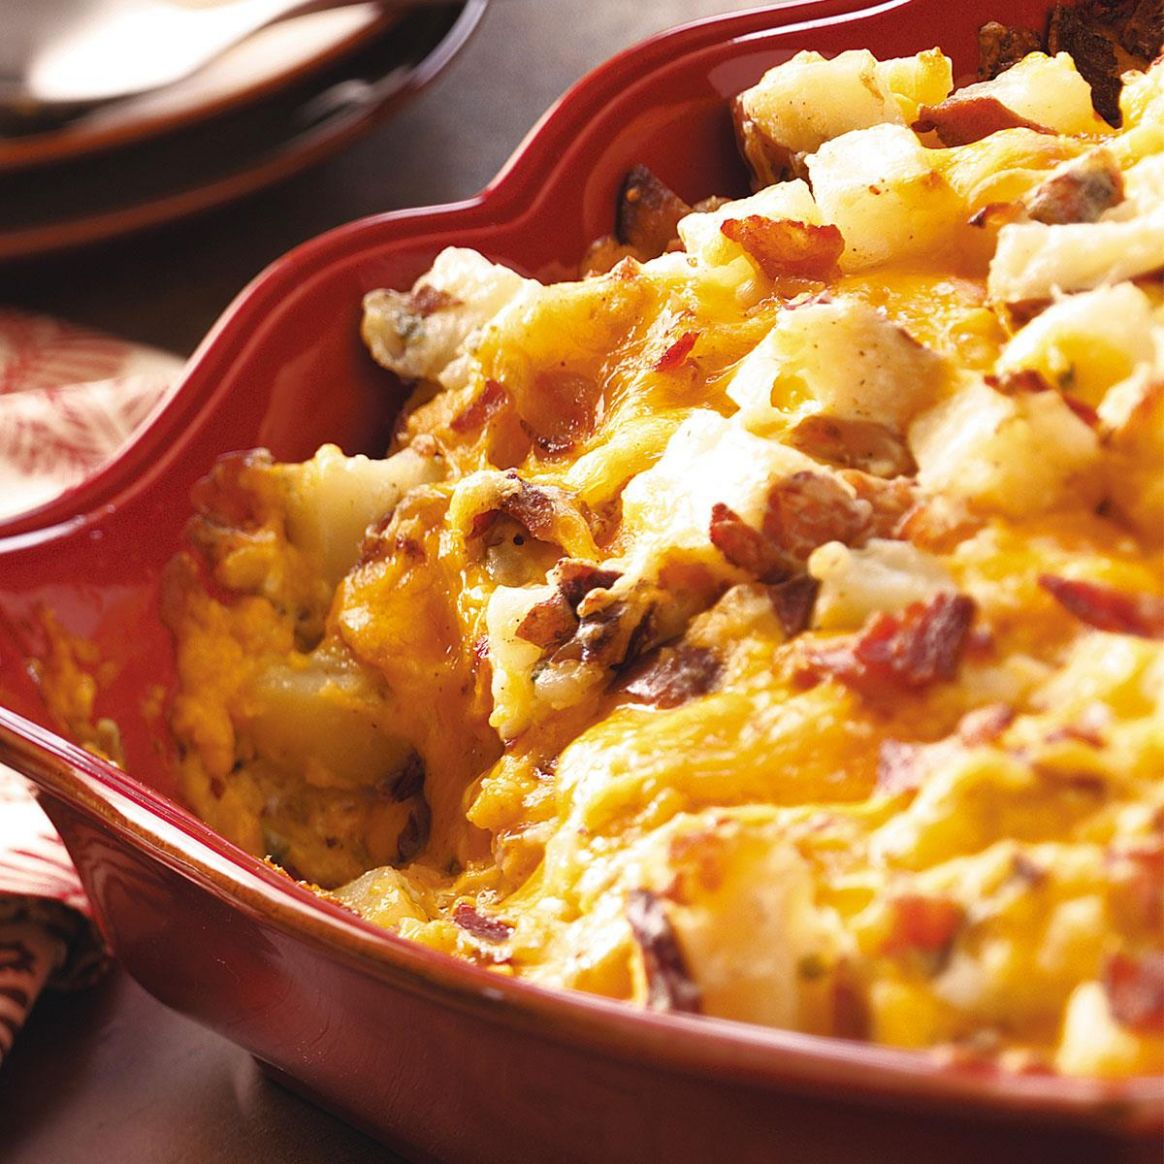 Baked Potato Casserole - Recipes Potato Casserole